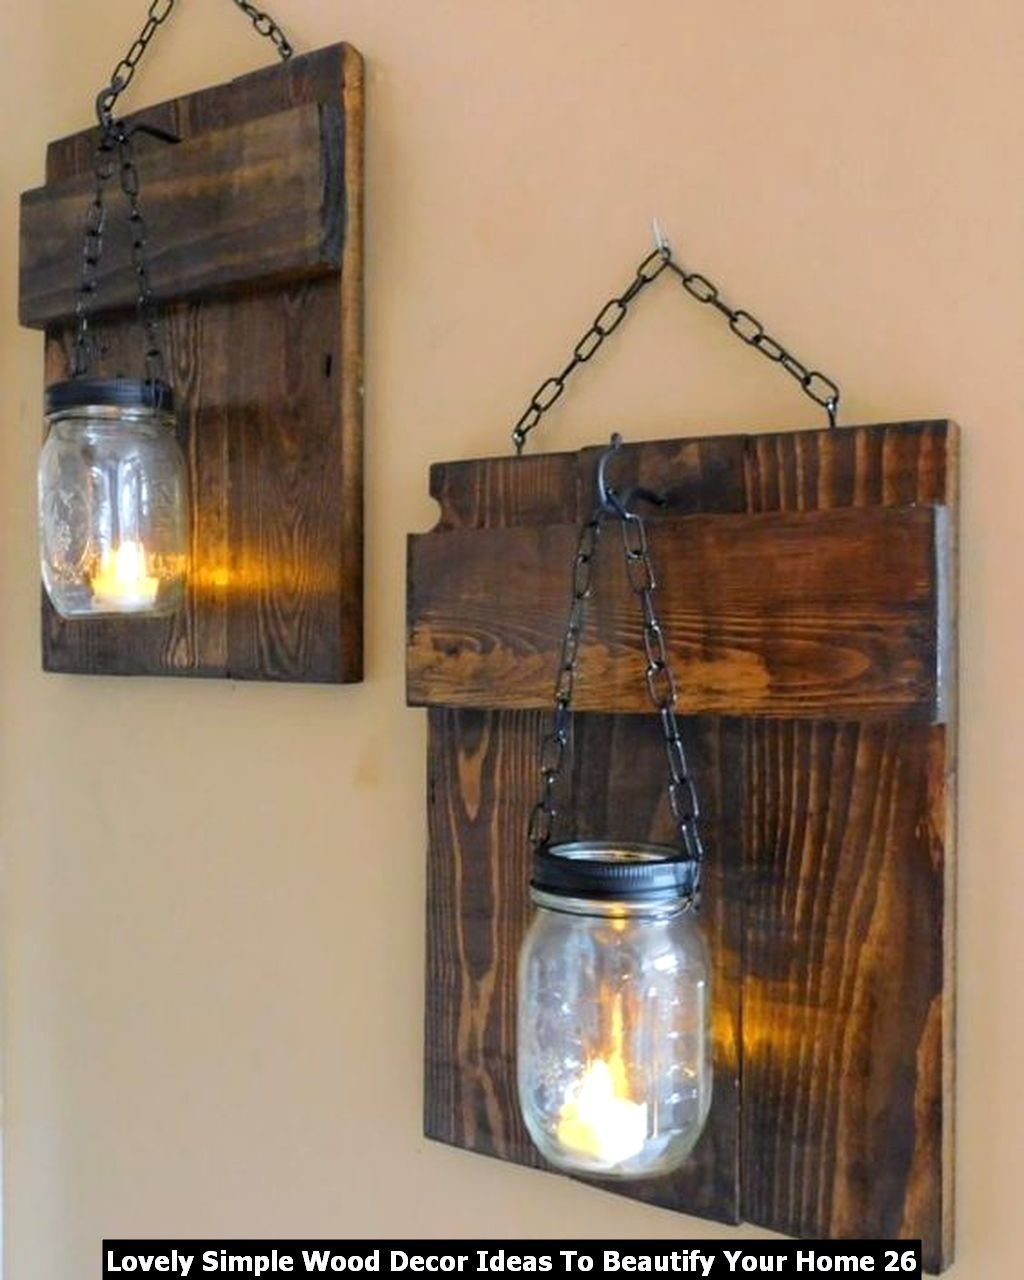 Lovely Simple Wood Decor Ideas To Beautify Your Home 26